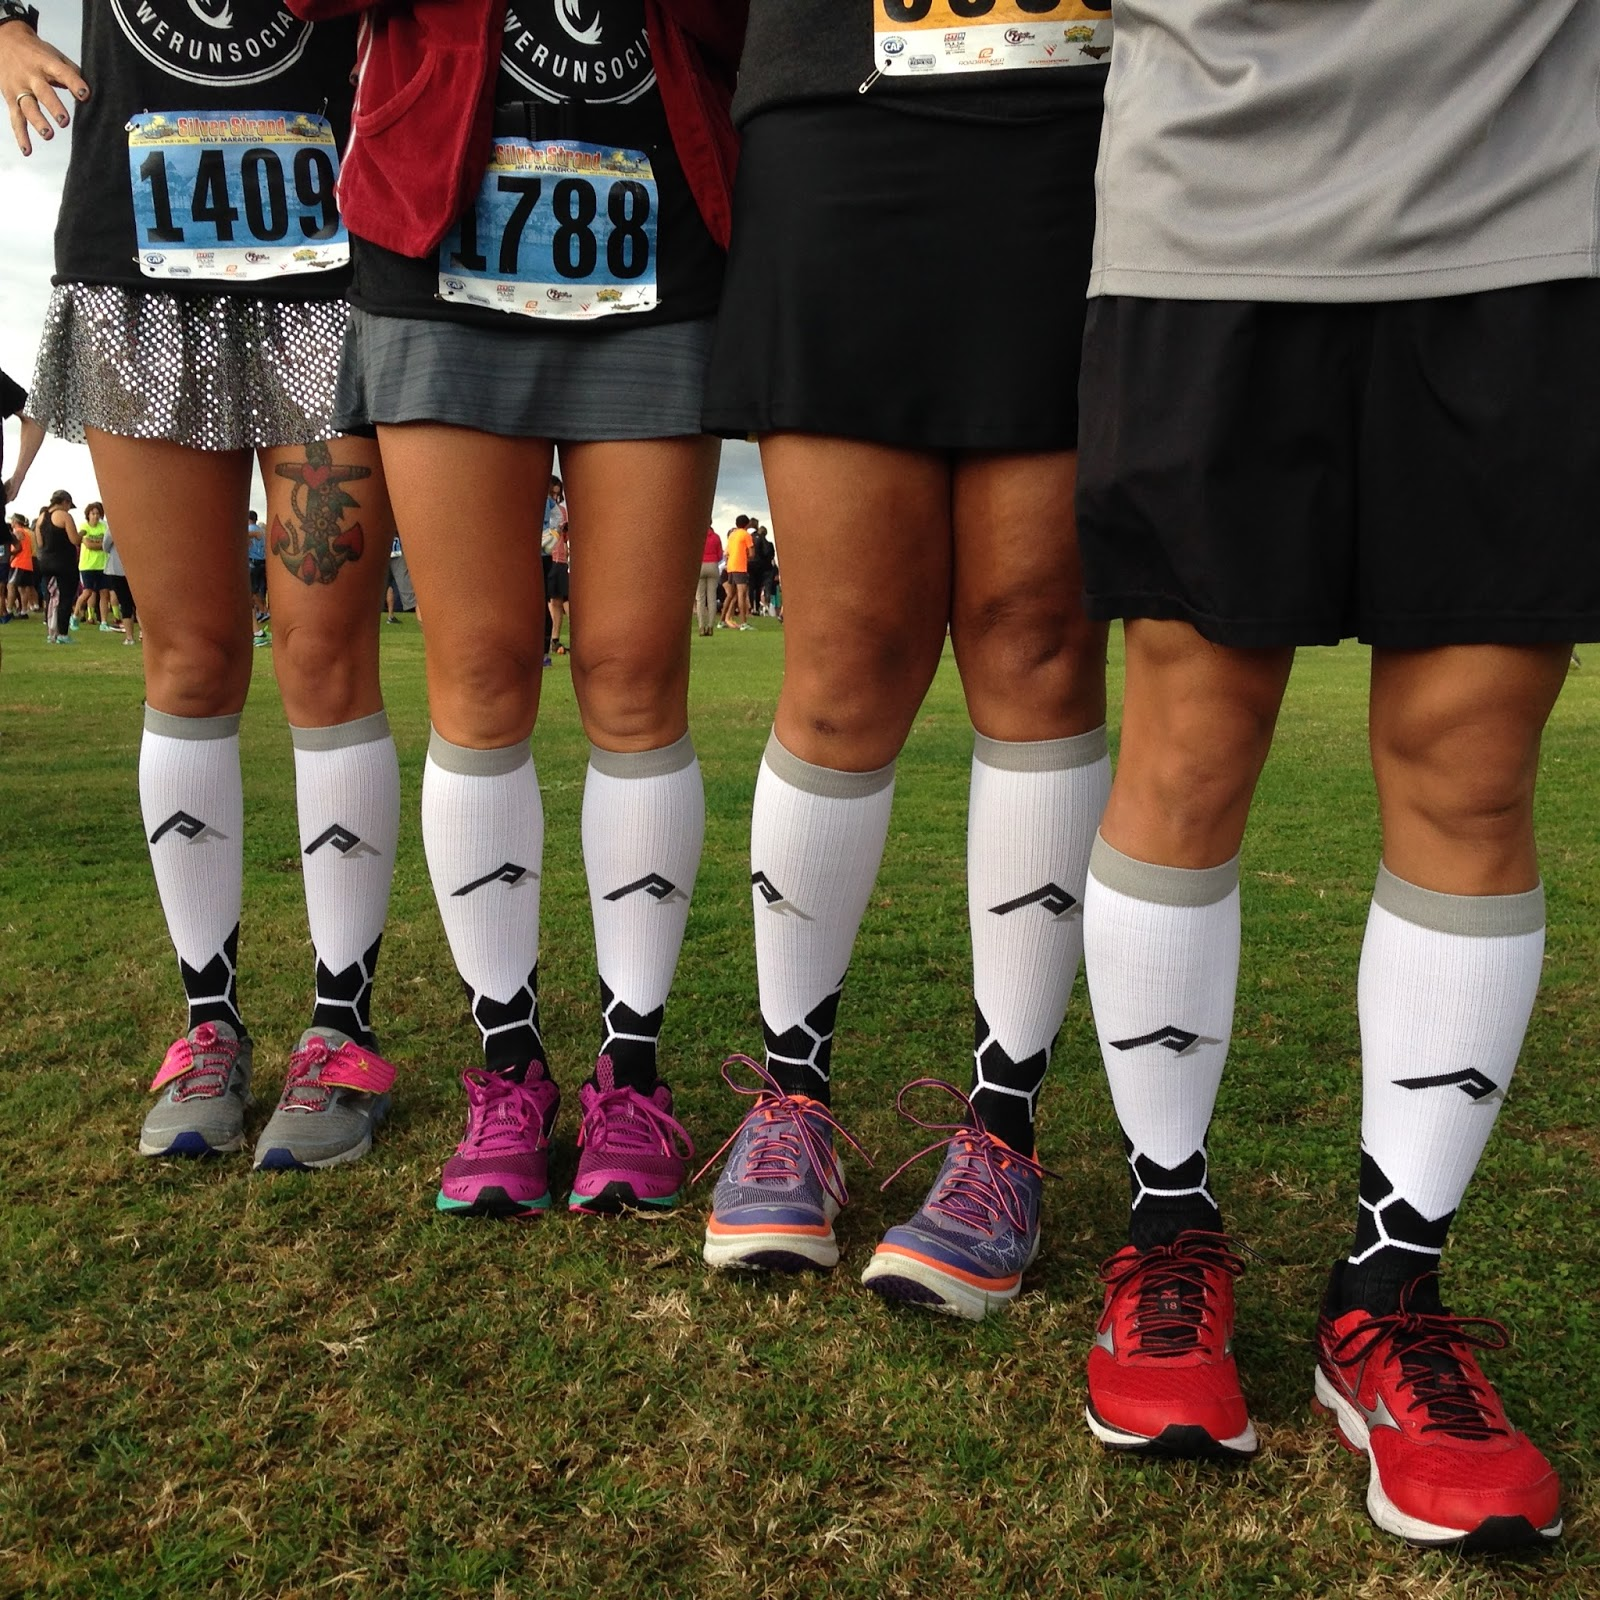 e5a312b299 Did you know that We Run Social did a collaboration with Pro Compression   The WRS BOOM Socks will be available in a week or so! Be on the look out!